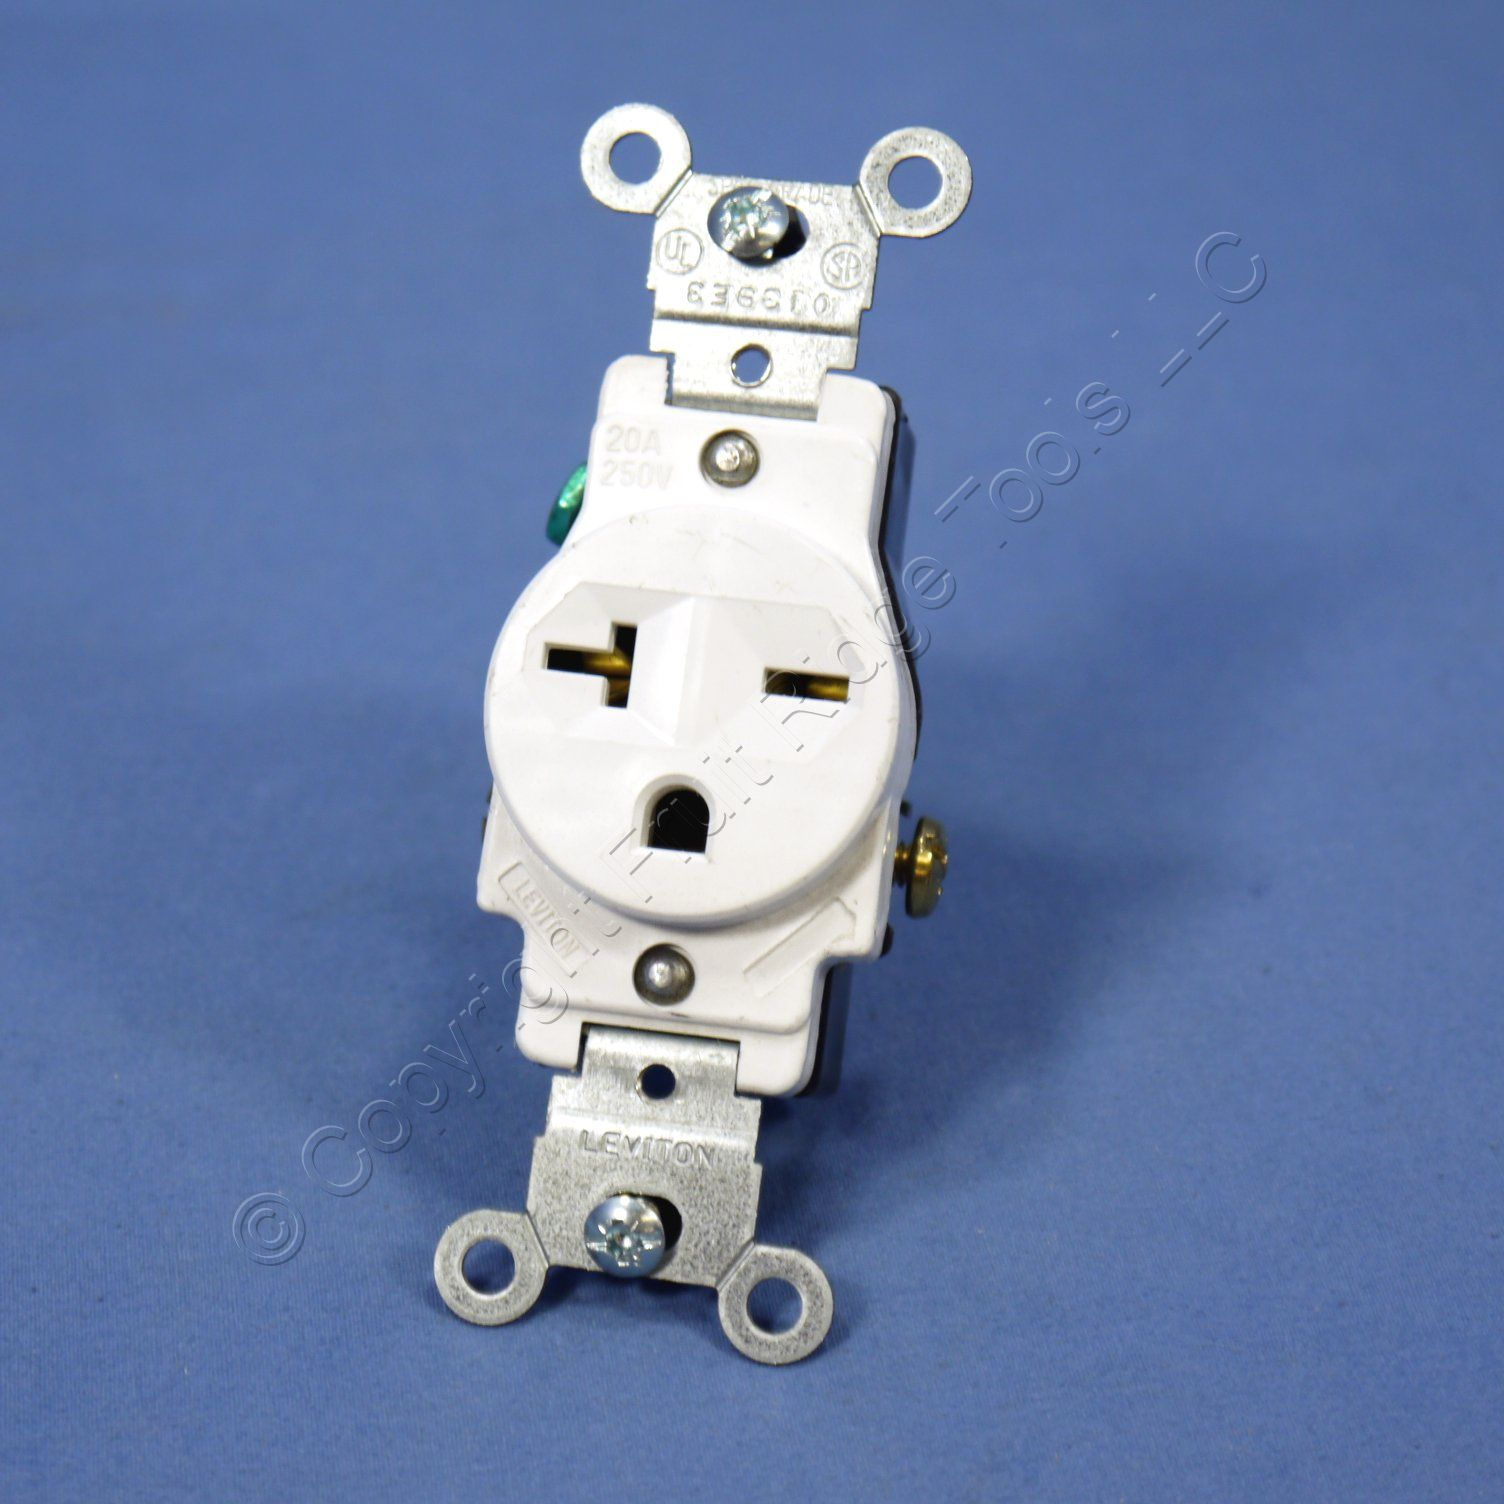 hight resolution of shop leviton white 6 20 commercial single outlet receptacle shop leviton white